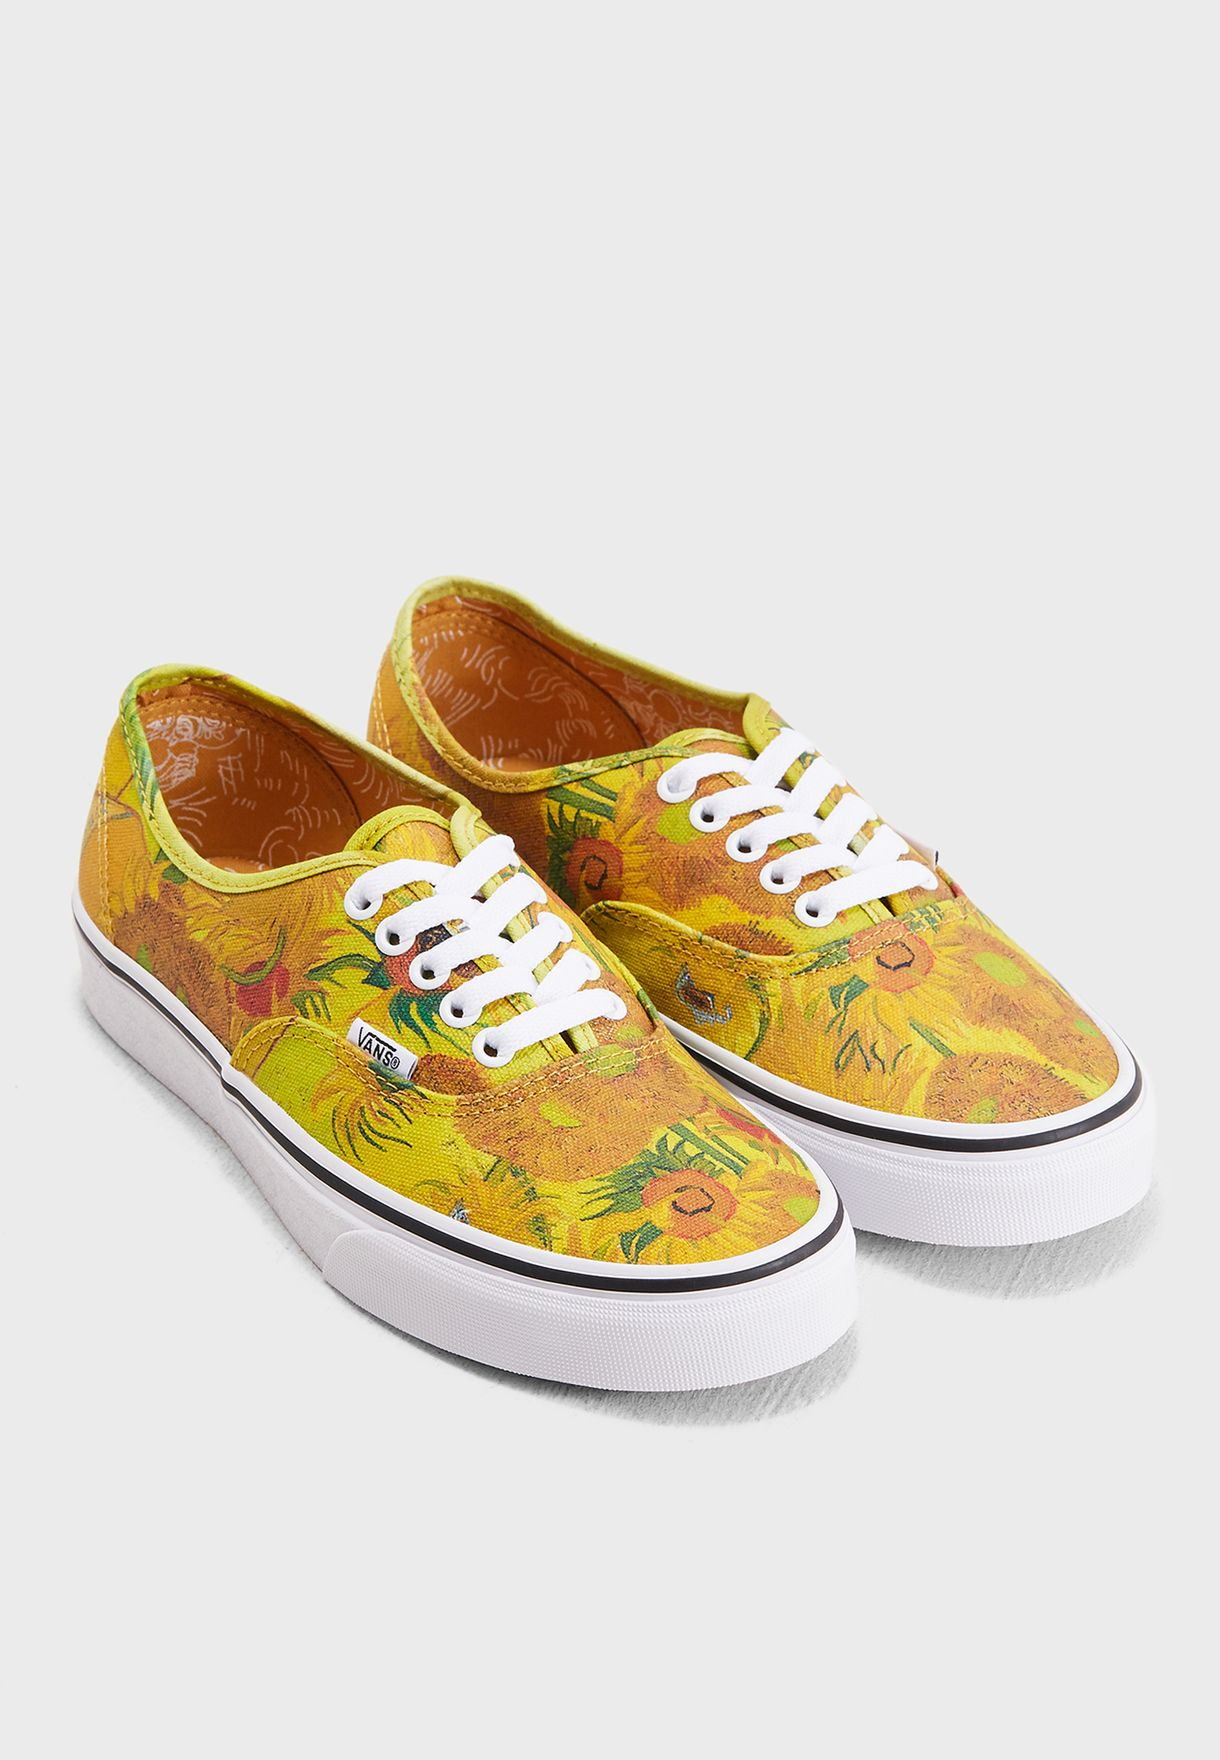 1737c7fc1483 Shop Vans yellow Vincent Van Gogh Authentic 8EMU3W for Women ...